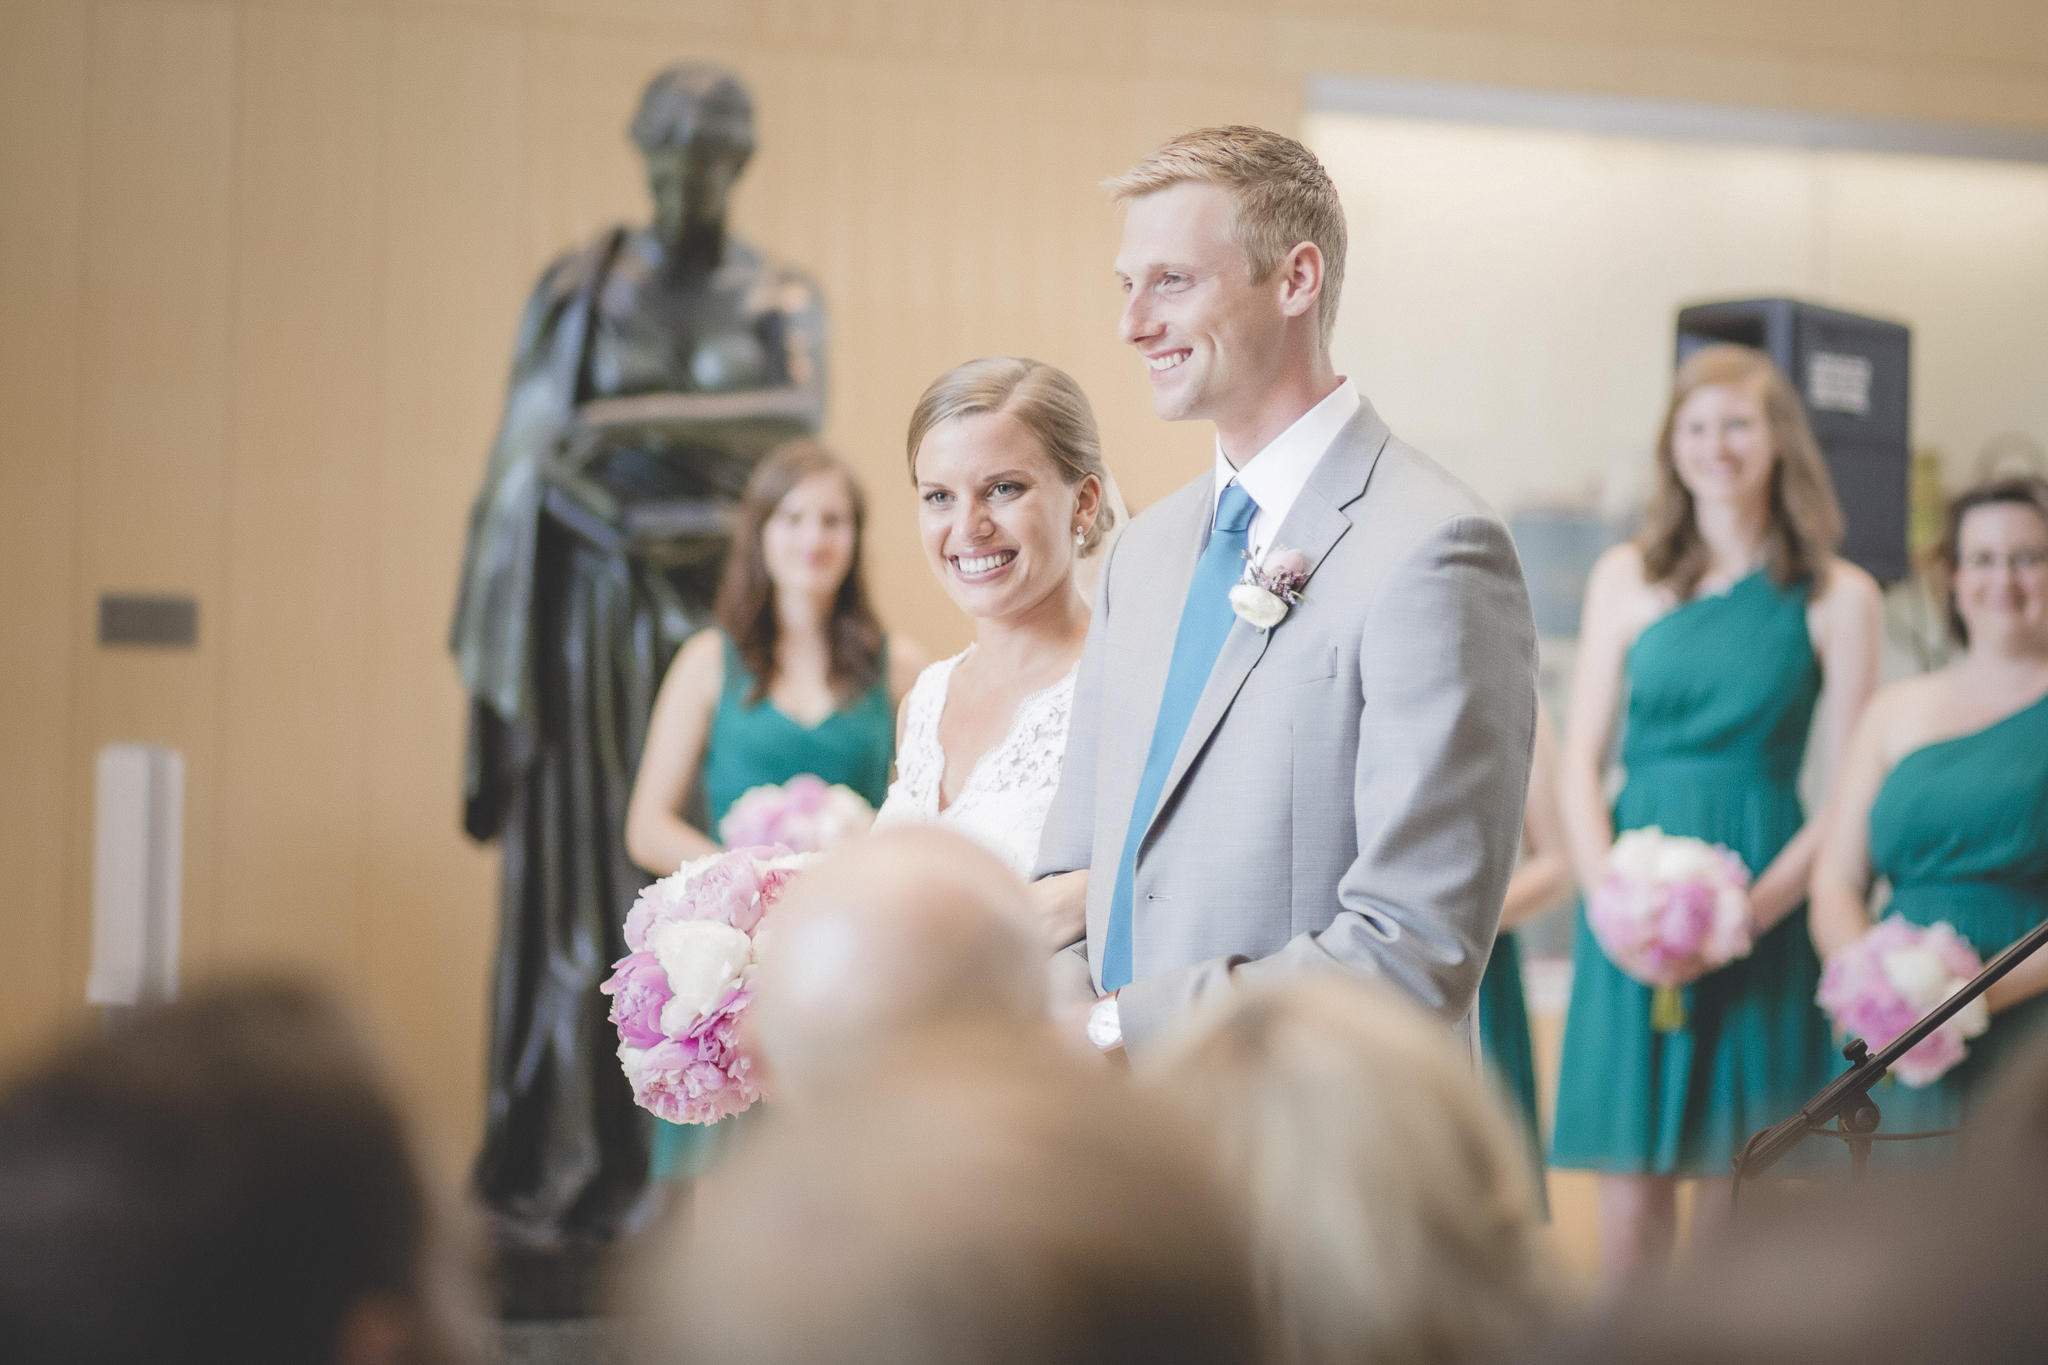 minneapolis central library mintahoe wedding photography-48.jpg